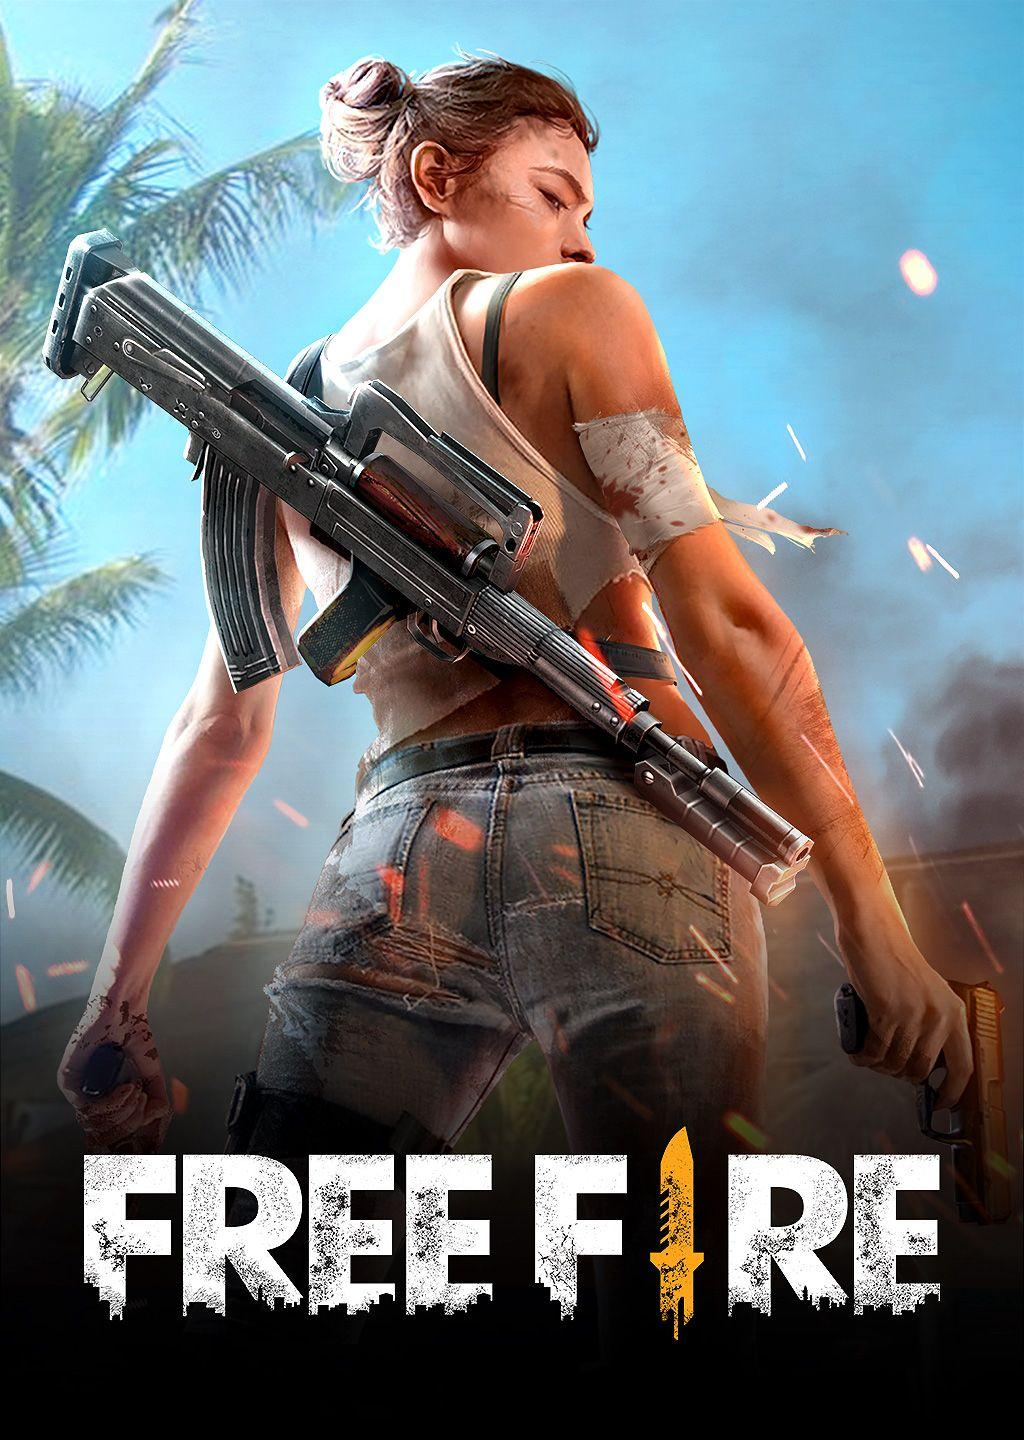 Garena Free Fire Wallpapers - Wallpaper Cave